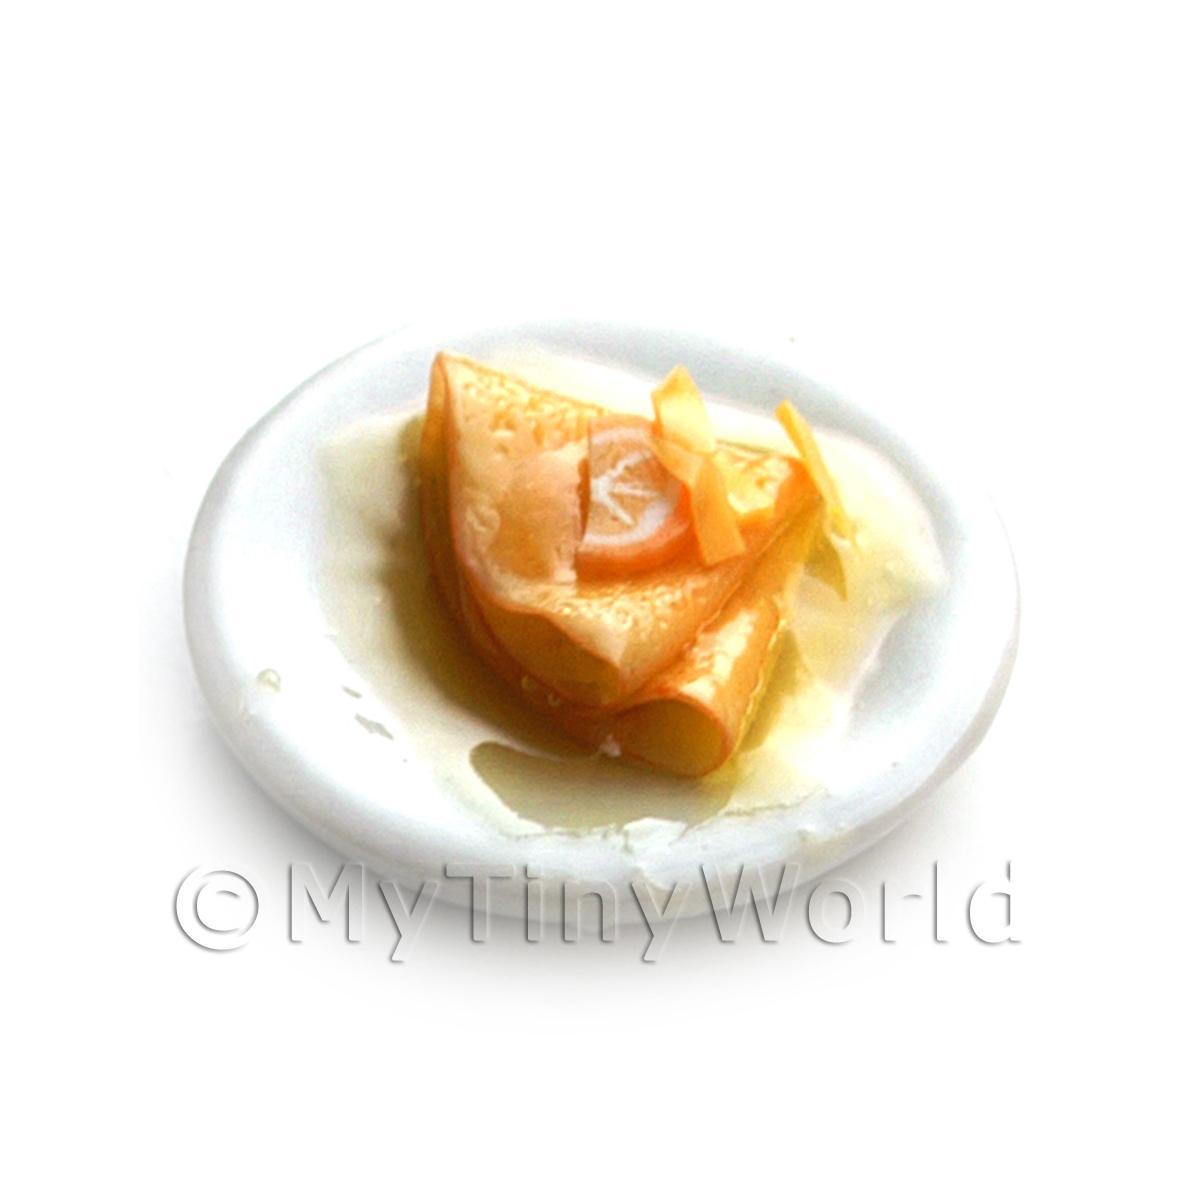 Dolls House Miniature Folded Pancakes Drizzled with Orange Syrup